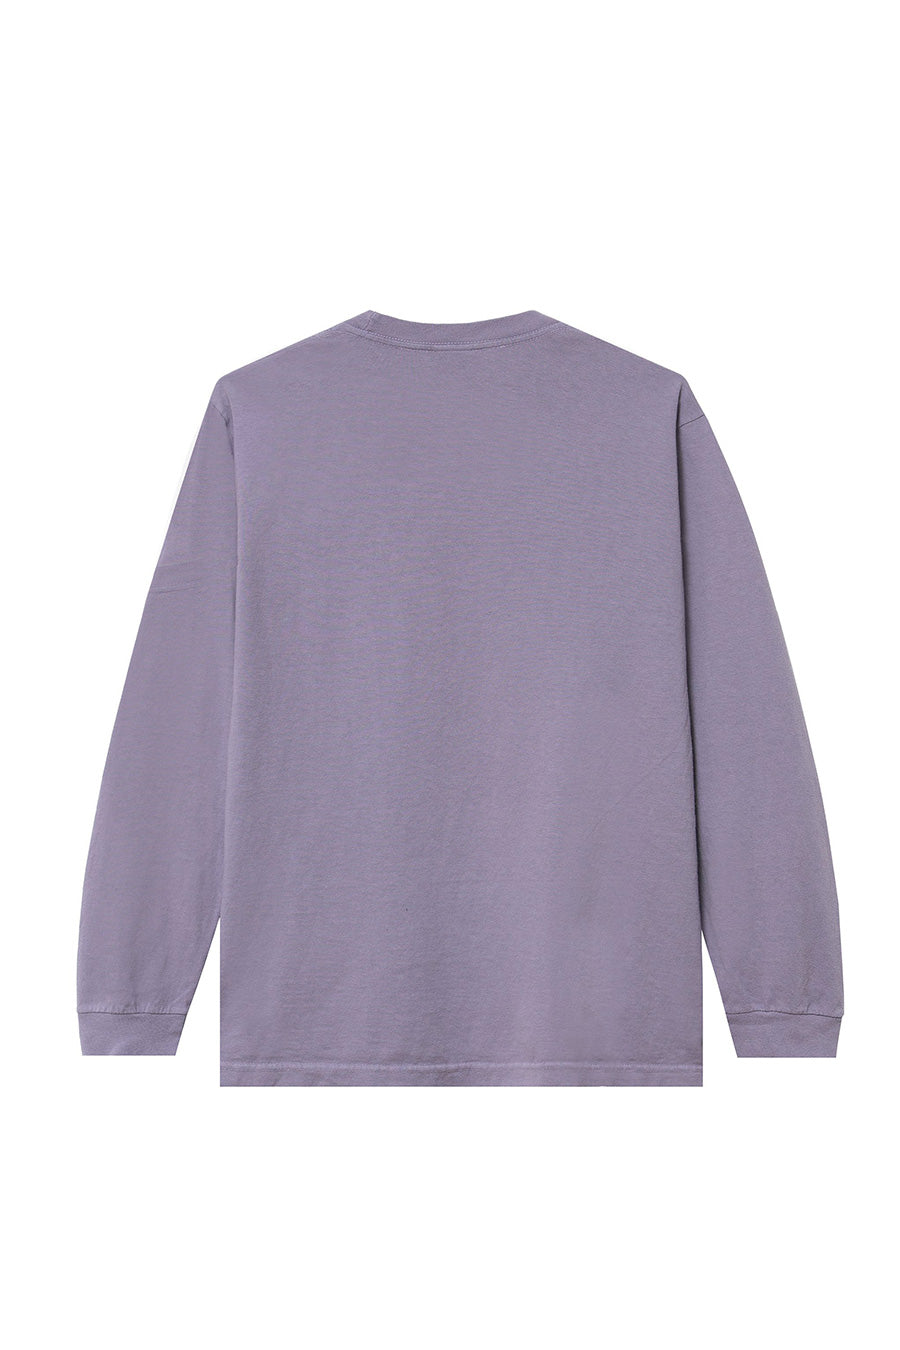 Powers Supply - Muted Plum Arch Long Sleeve T-Shirt | 1032 SPACE